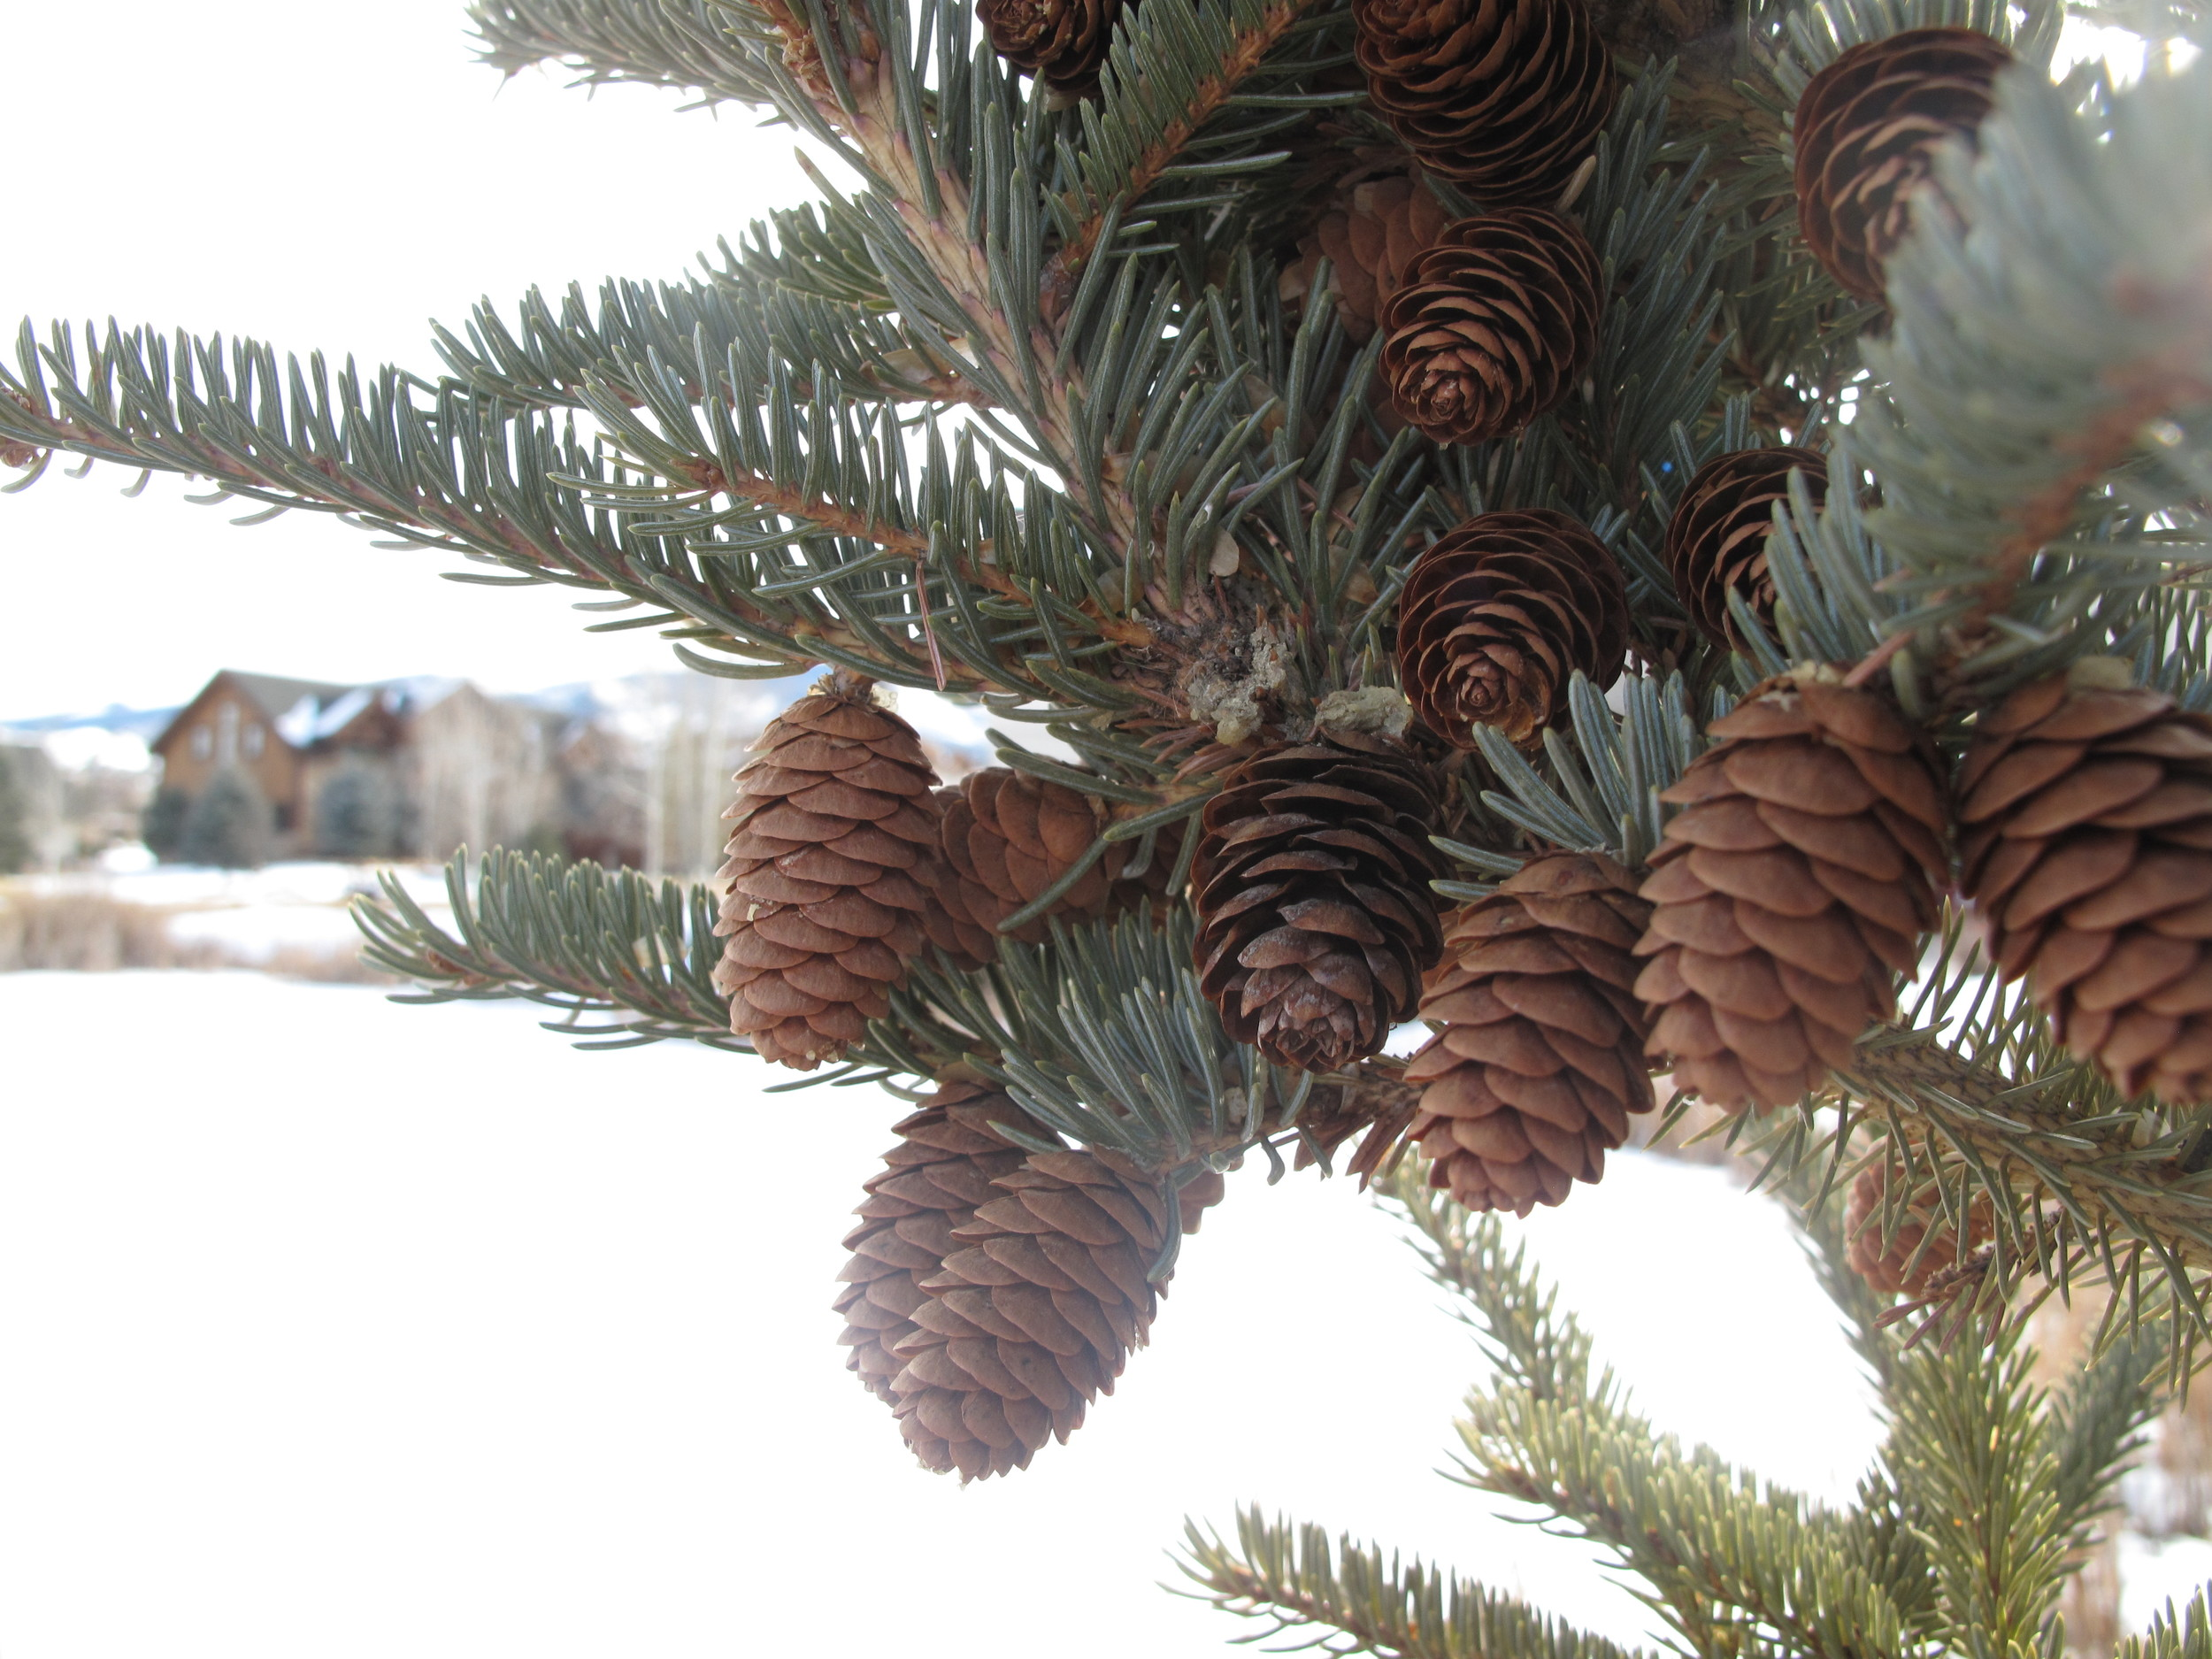 Pine cones on a pine tree.